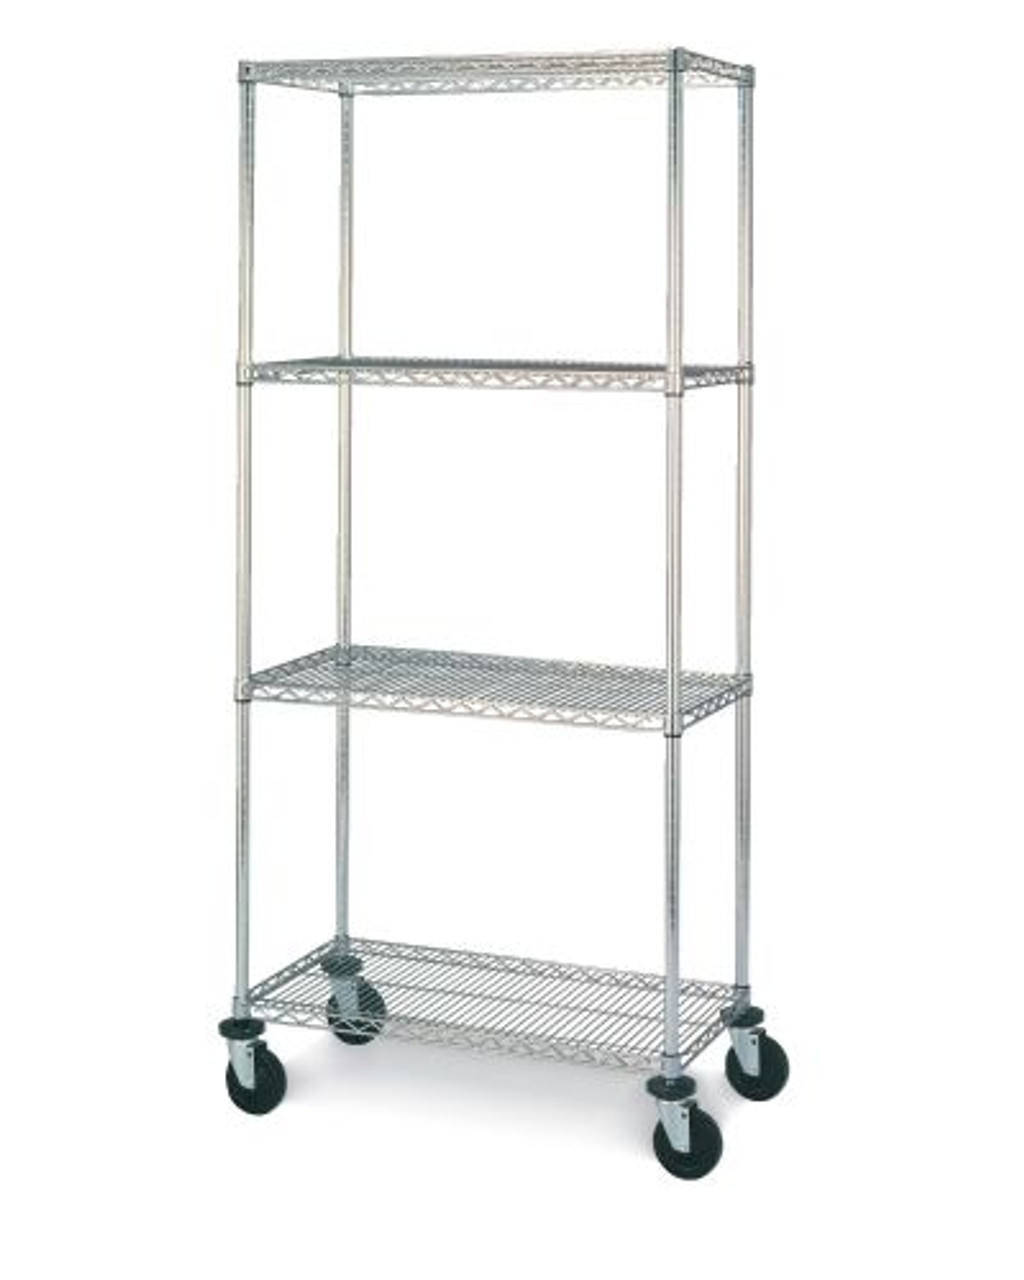 "Olympic 18"" Deep 4 Shelf Mobile Carts - Chrome - 18"" x 36"" x 59"" MJ1836-54UC"